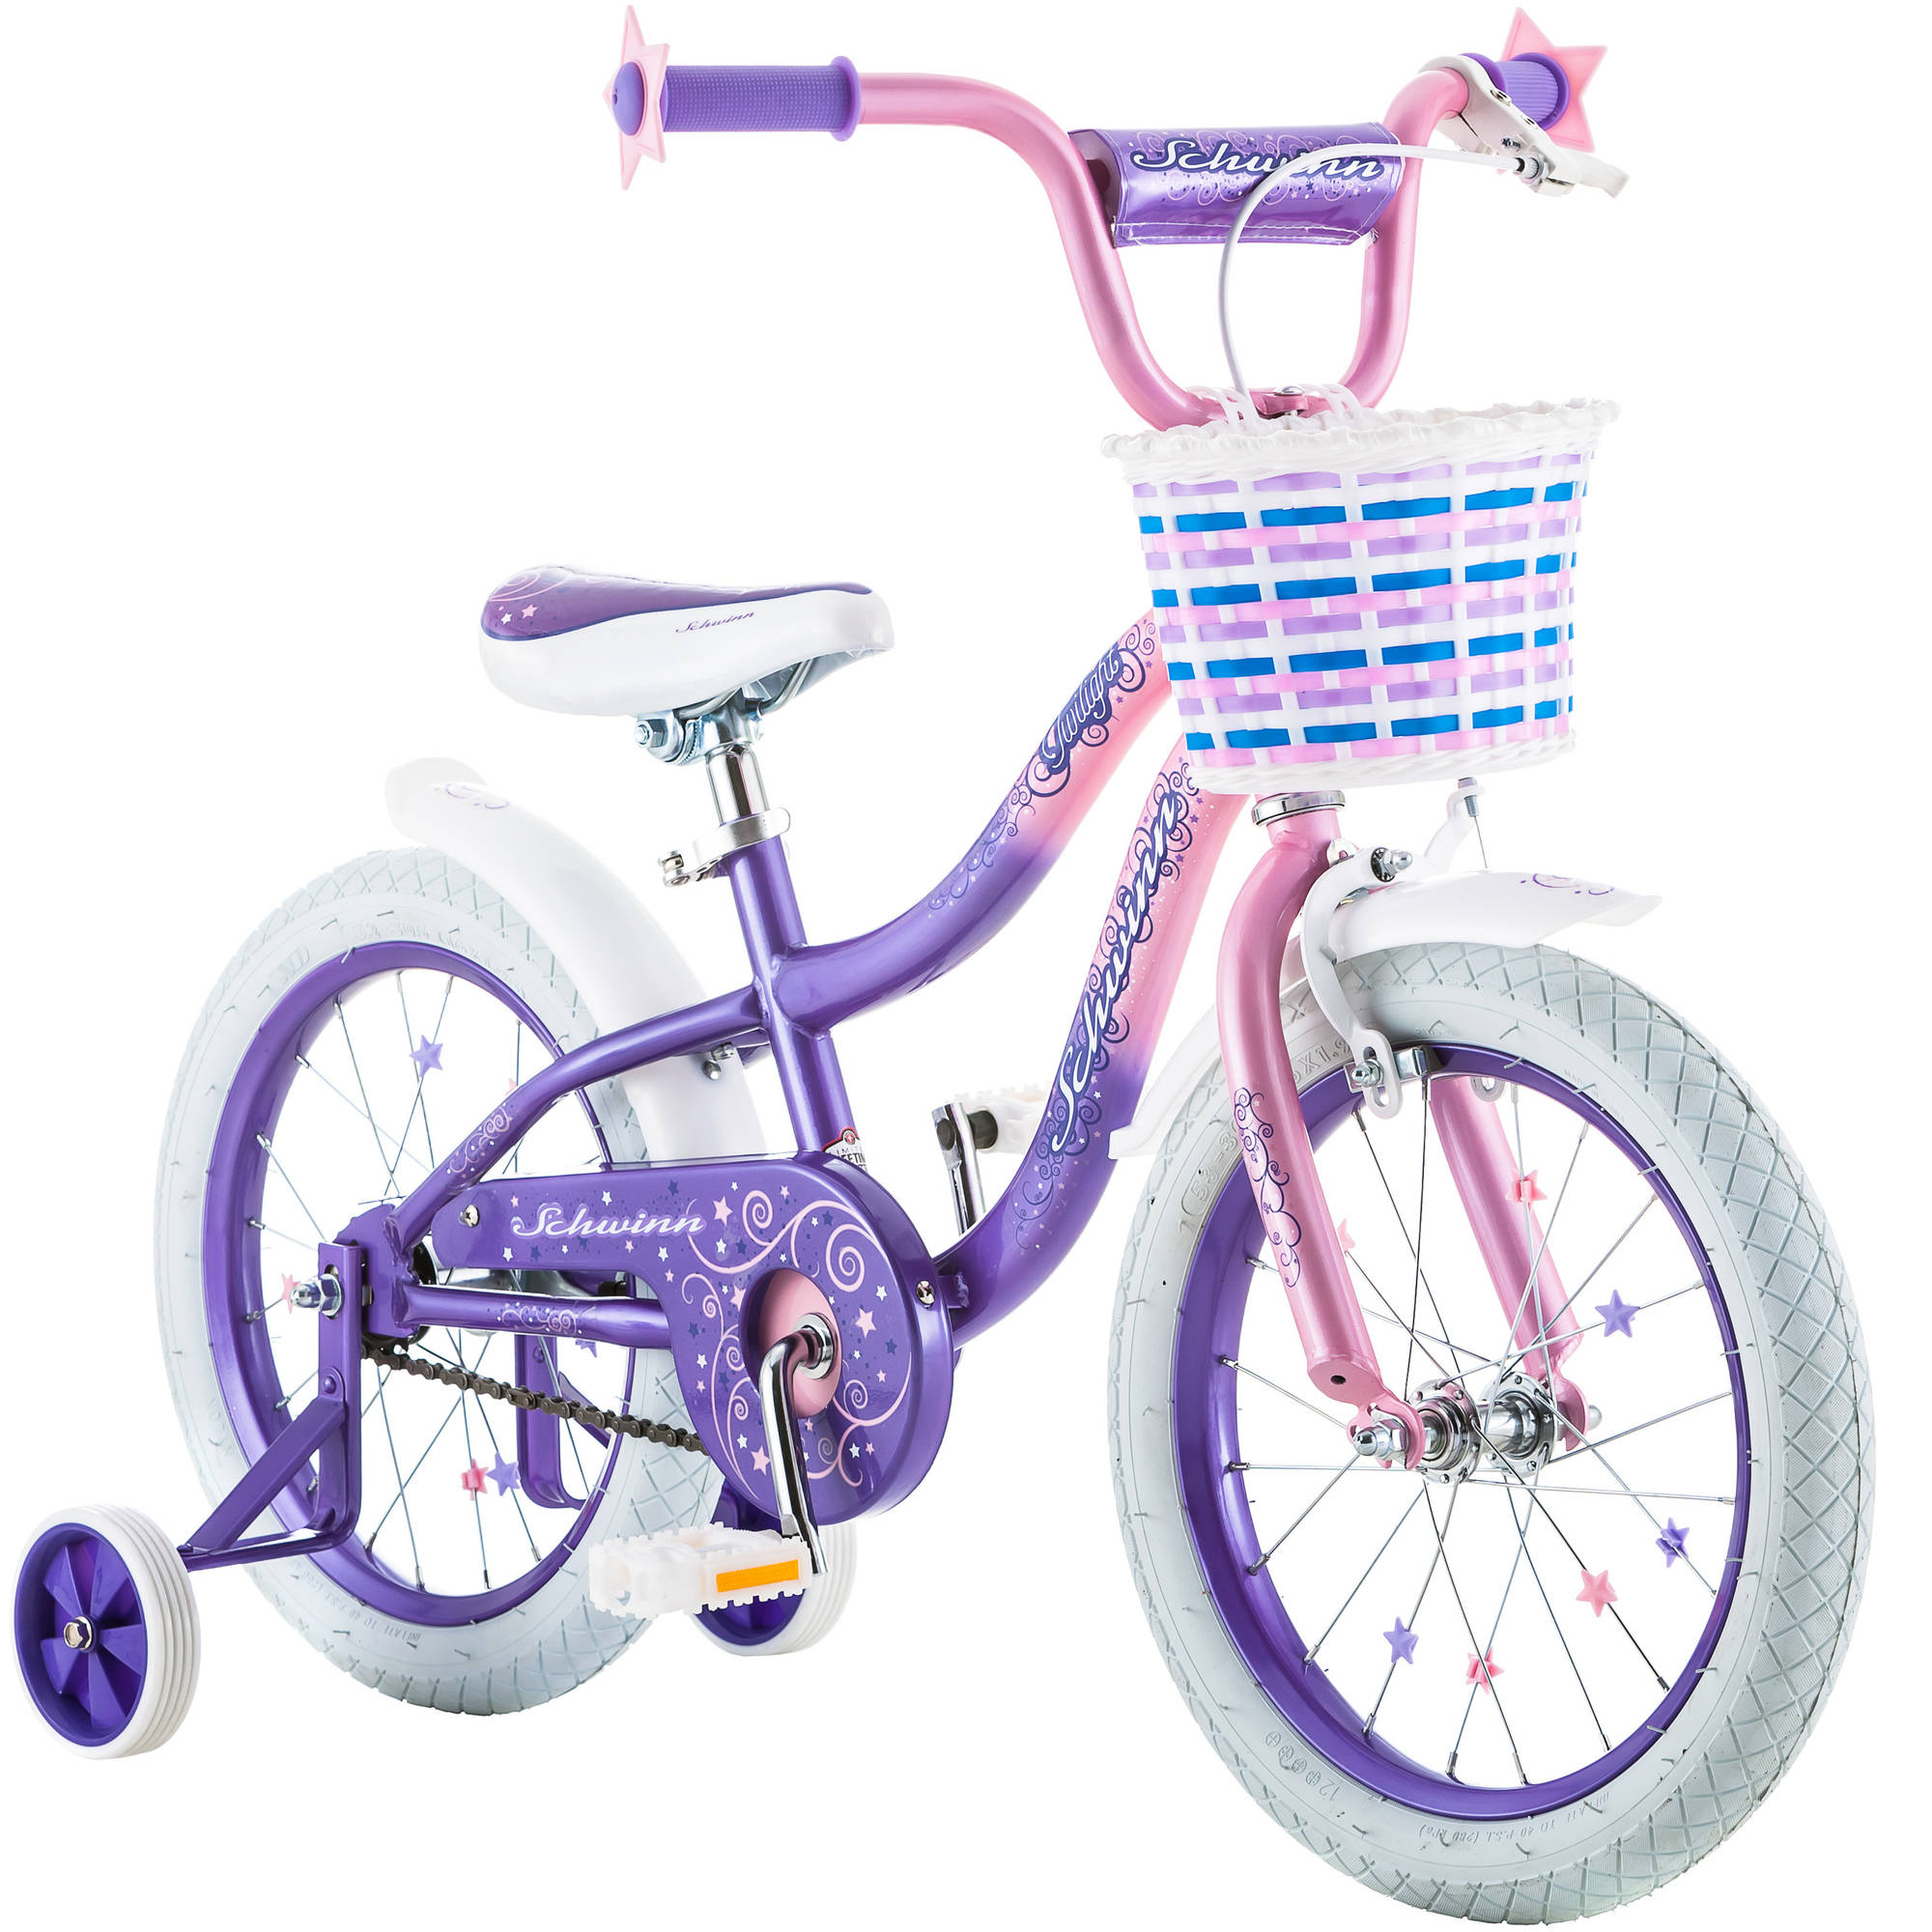 "16"" Schwinn Twilight Girls' Bike, Pink / Purple"